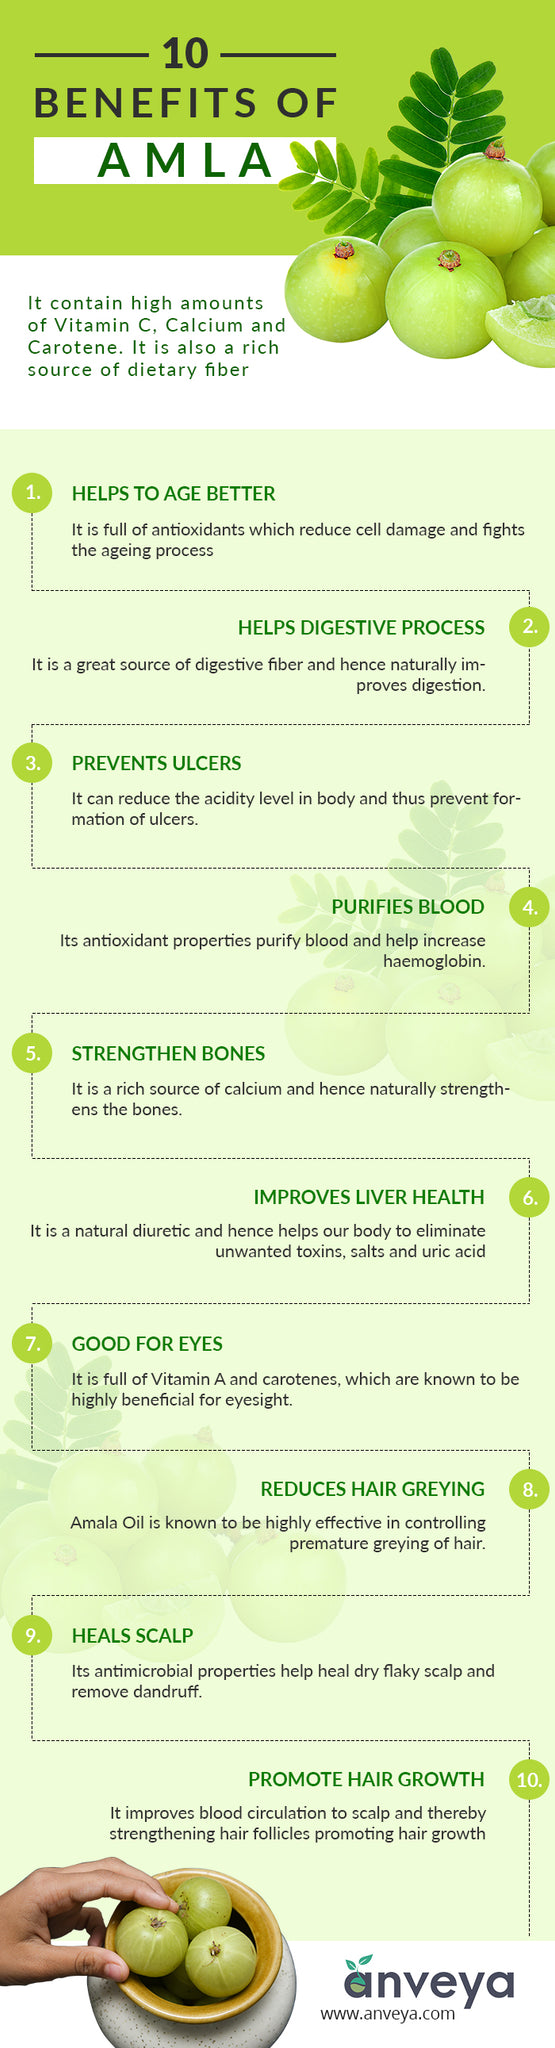 10 Benefits of Amla